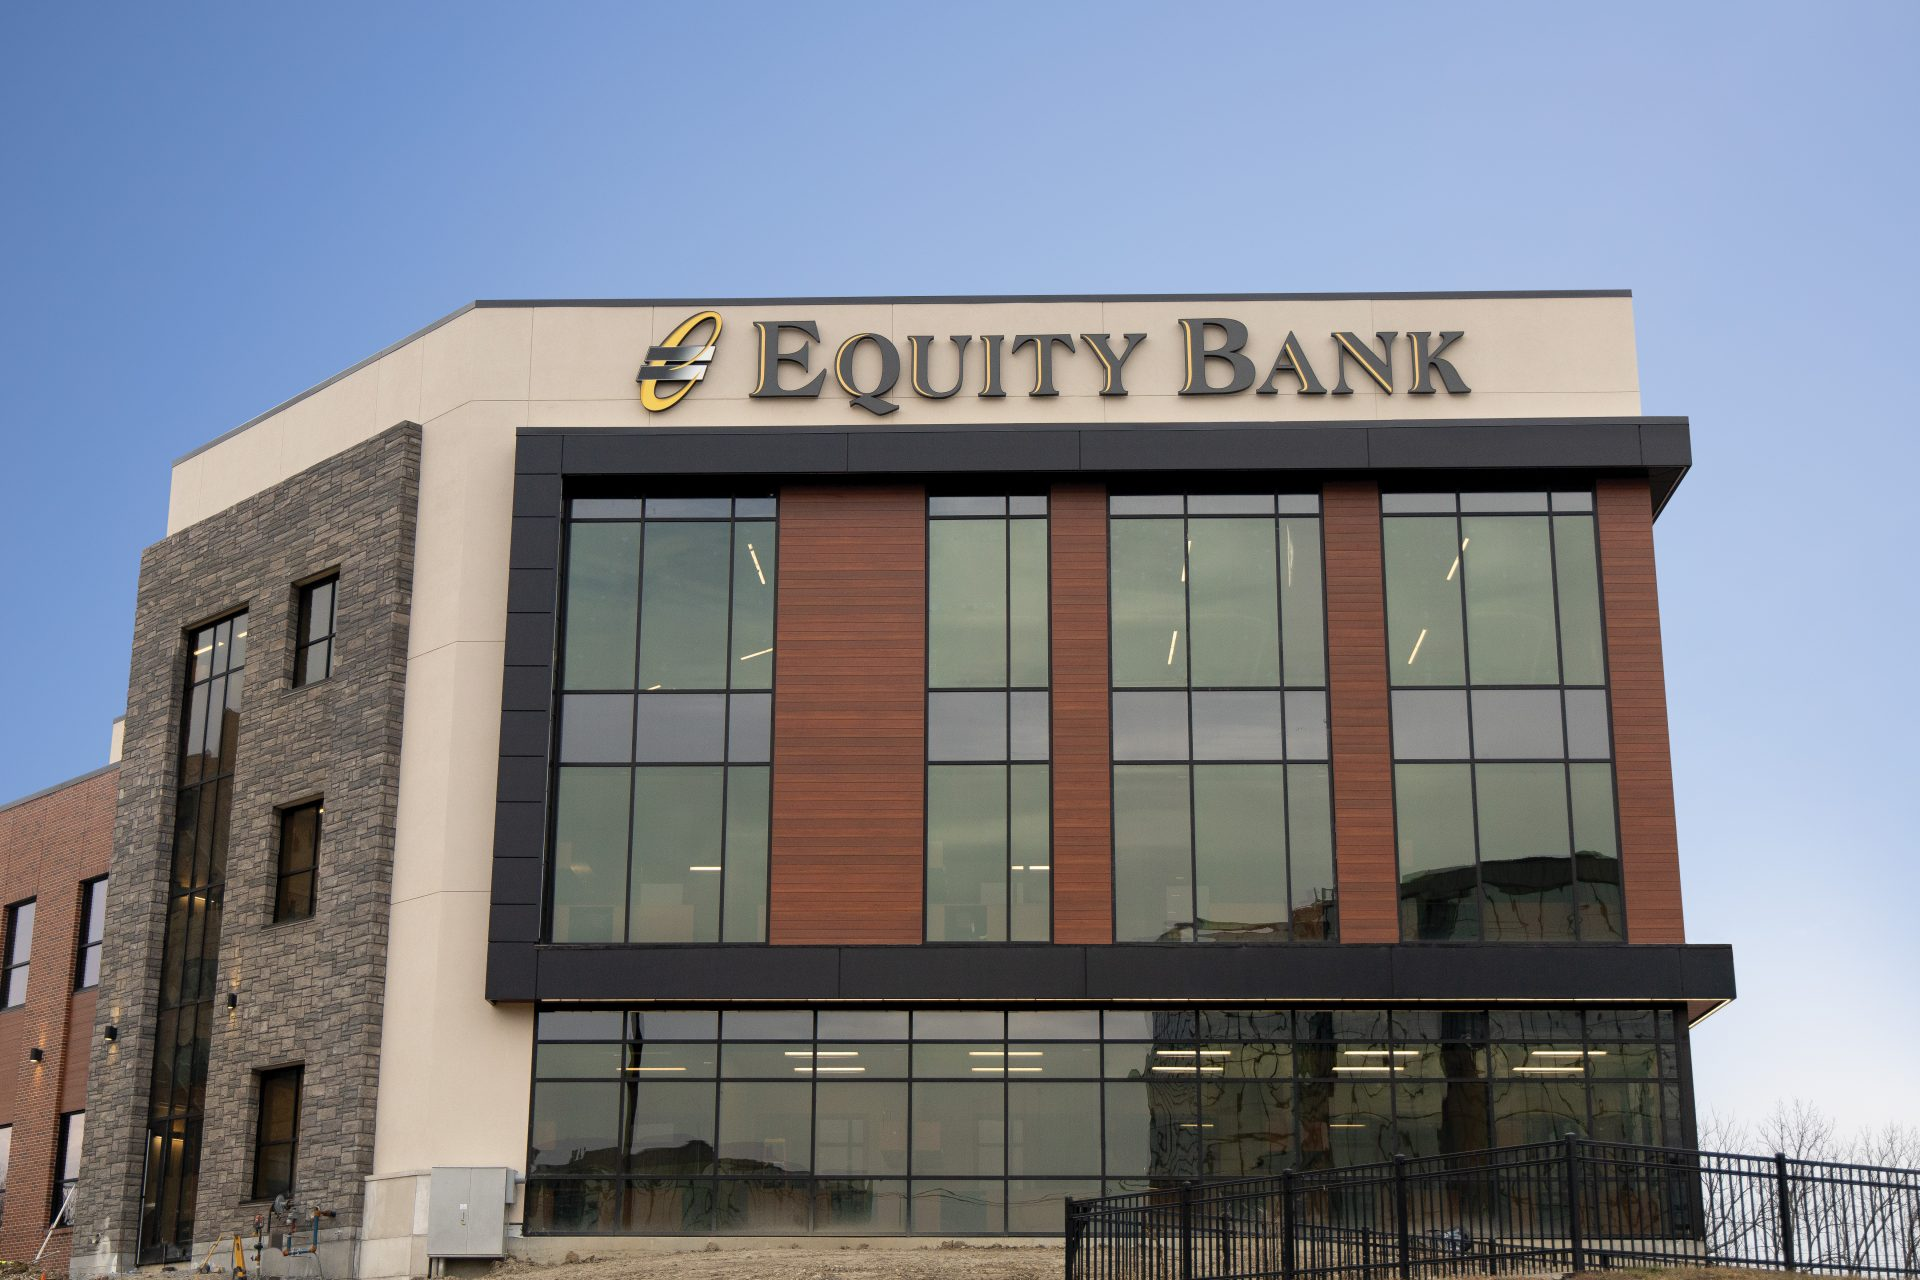 Equity Bank Overland Park branch exterior.